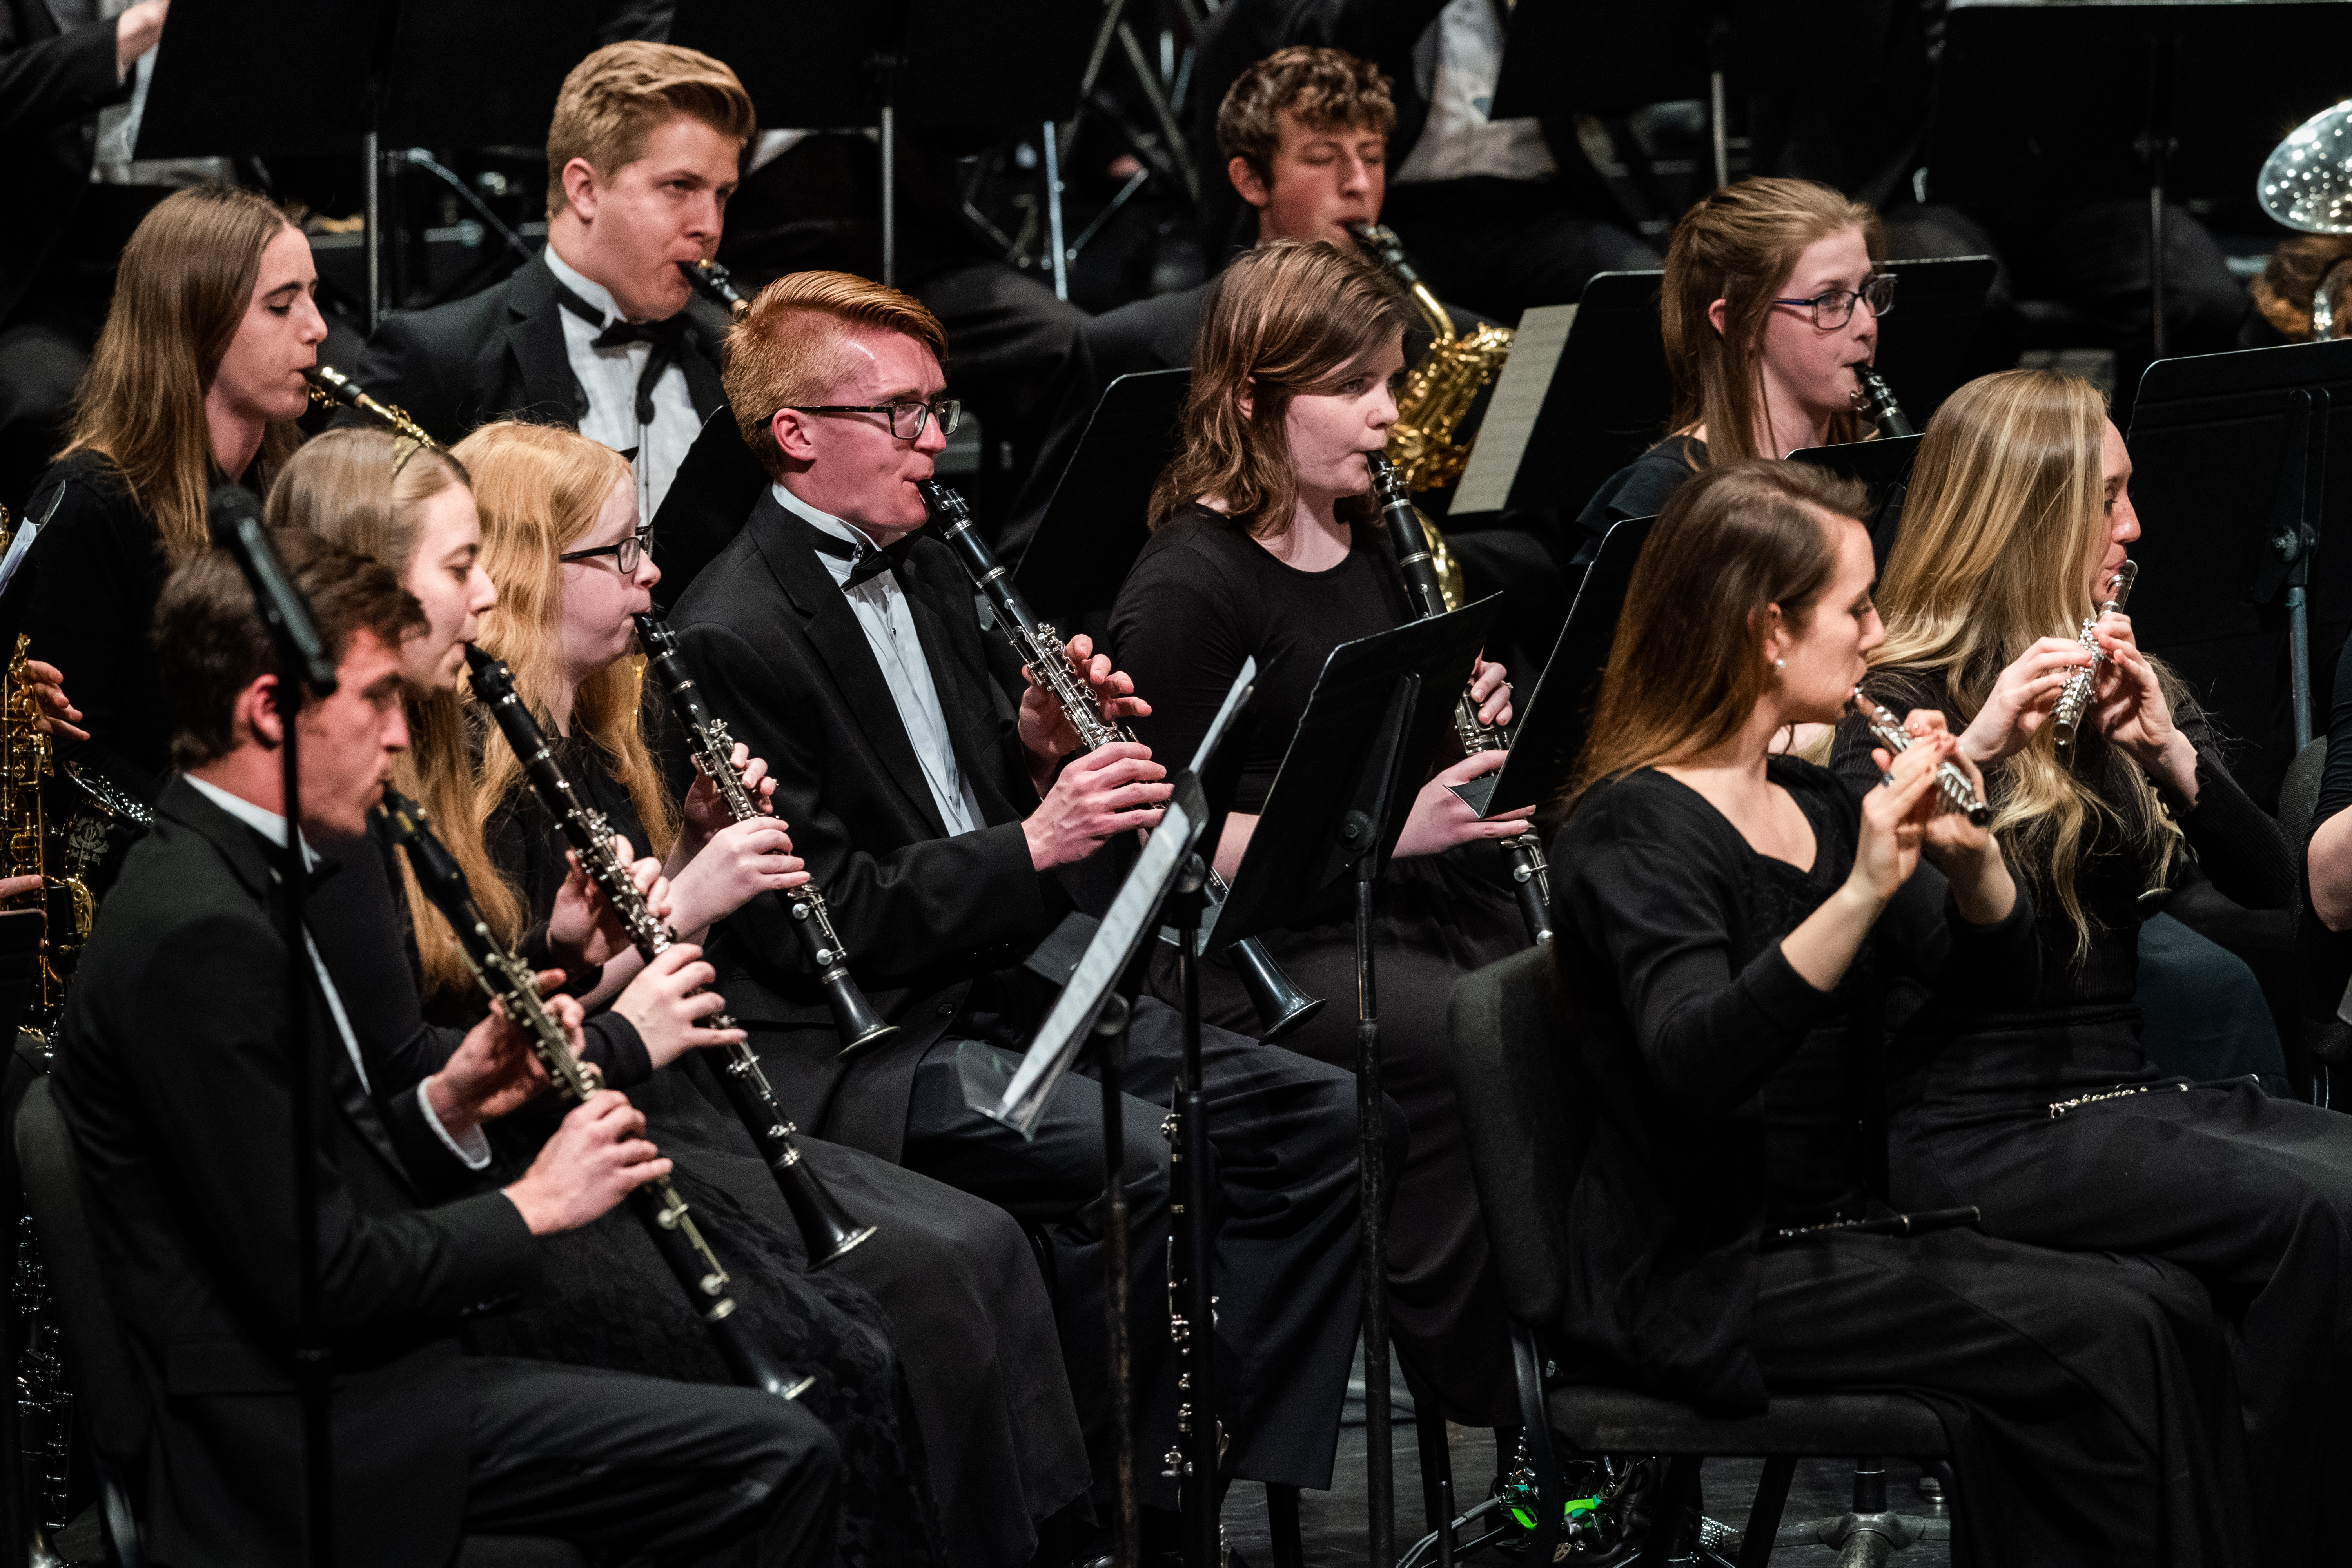 {{filenamebase}  1904-51 Wind Symphony in Concert  April 12 2019  Photo by Gabriel Mayberry/BYU  © BYU PHOTO 2019 All Rights Reserved photo@byu.edu  (801)422-7322